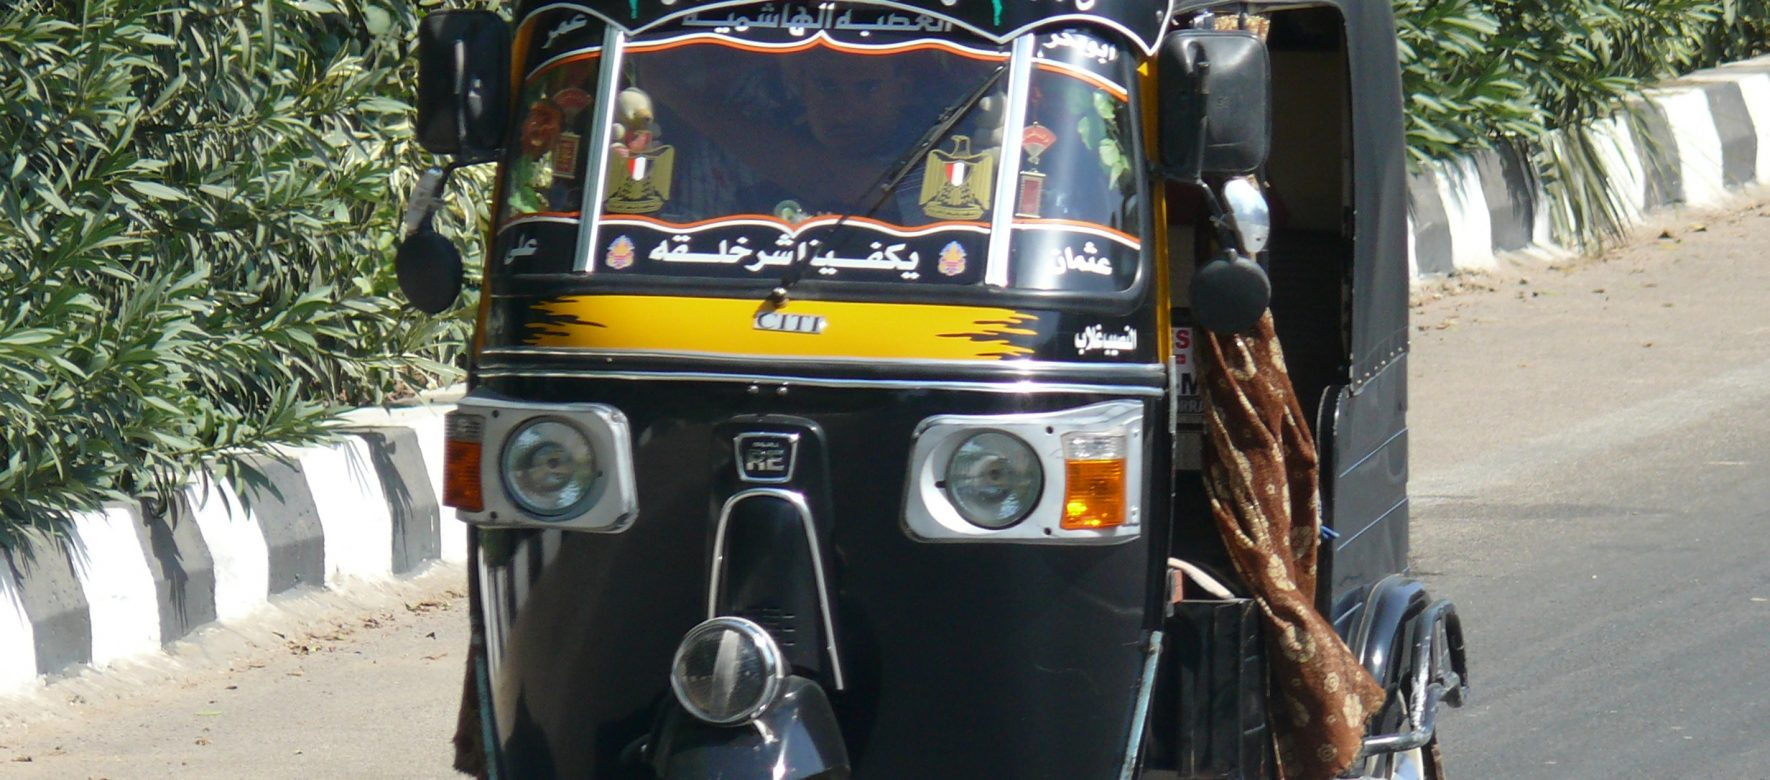 Egypt: What if Tuk-Tuk were an alternative transportation mode in Cairo? 2